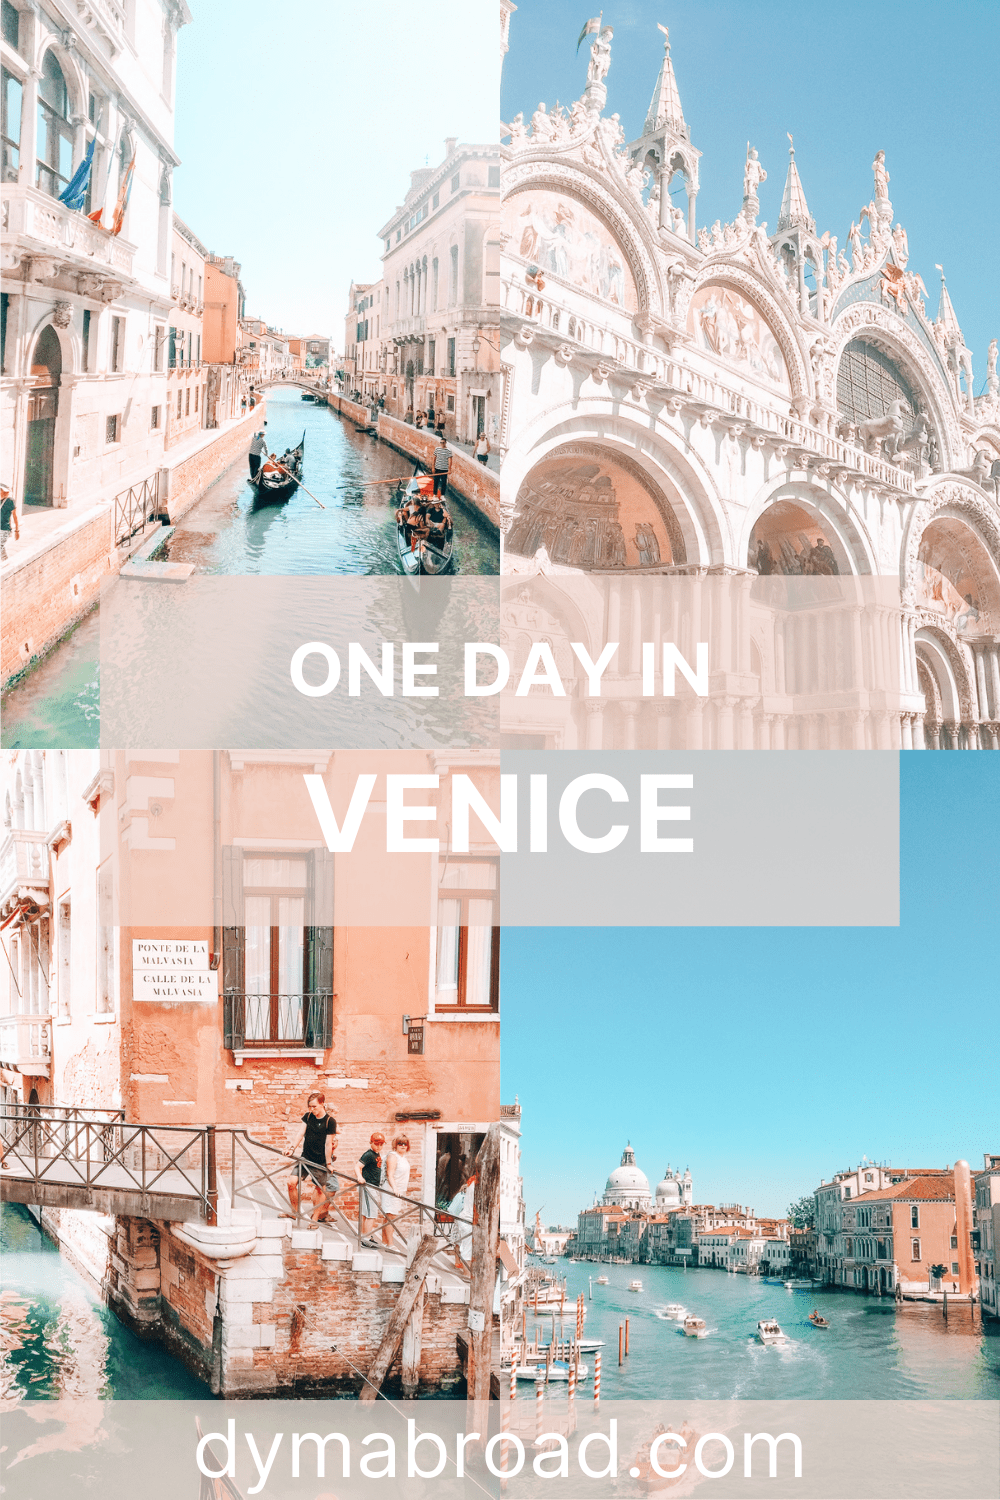 One day in Venice Pinterest image